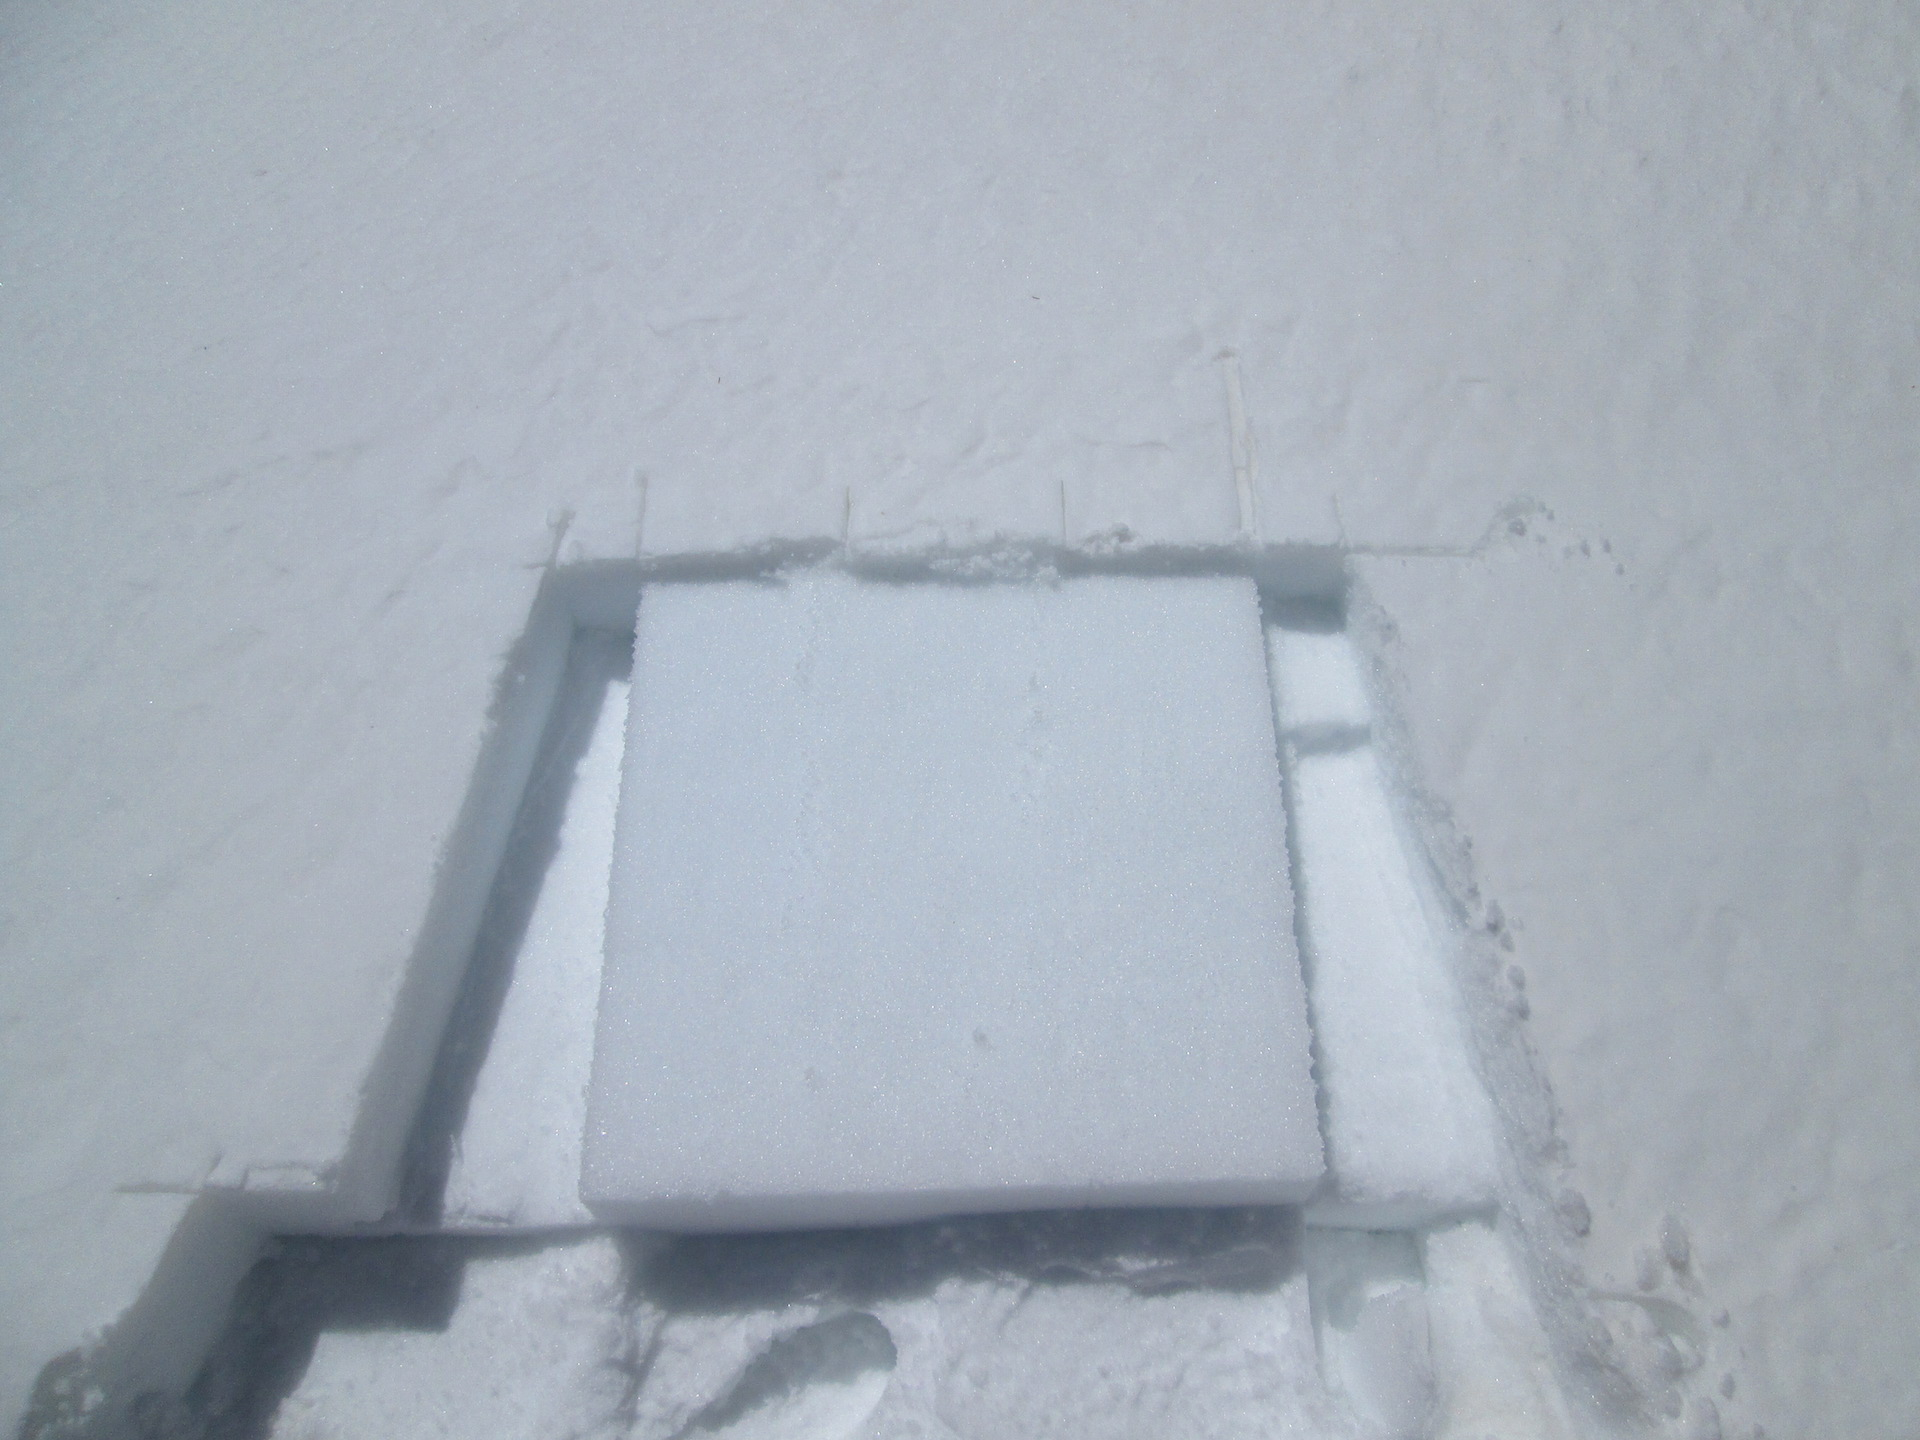 After collecting the 0.5m2 sample of D3, this clean white (square) surface showed clear contrast with the surrounding snowcover where the merged D1/2/3 dust layers was covered by less than a centimeter of new snow.